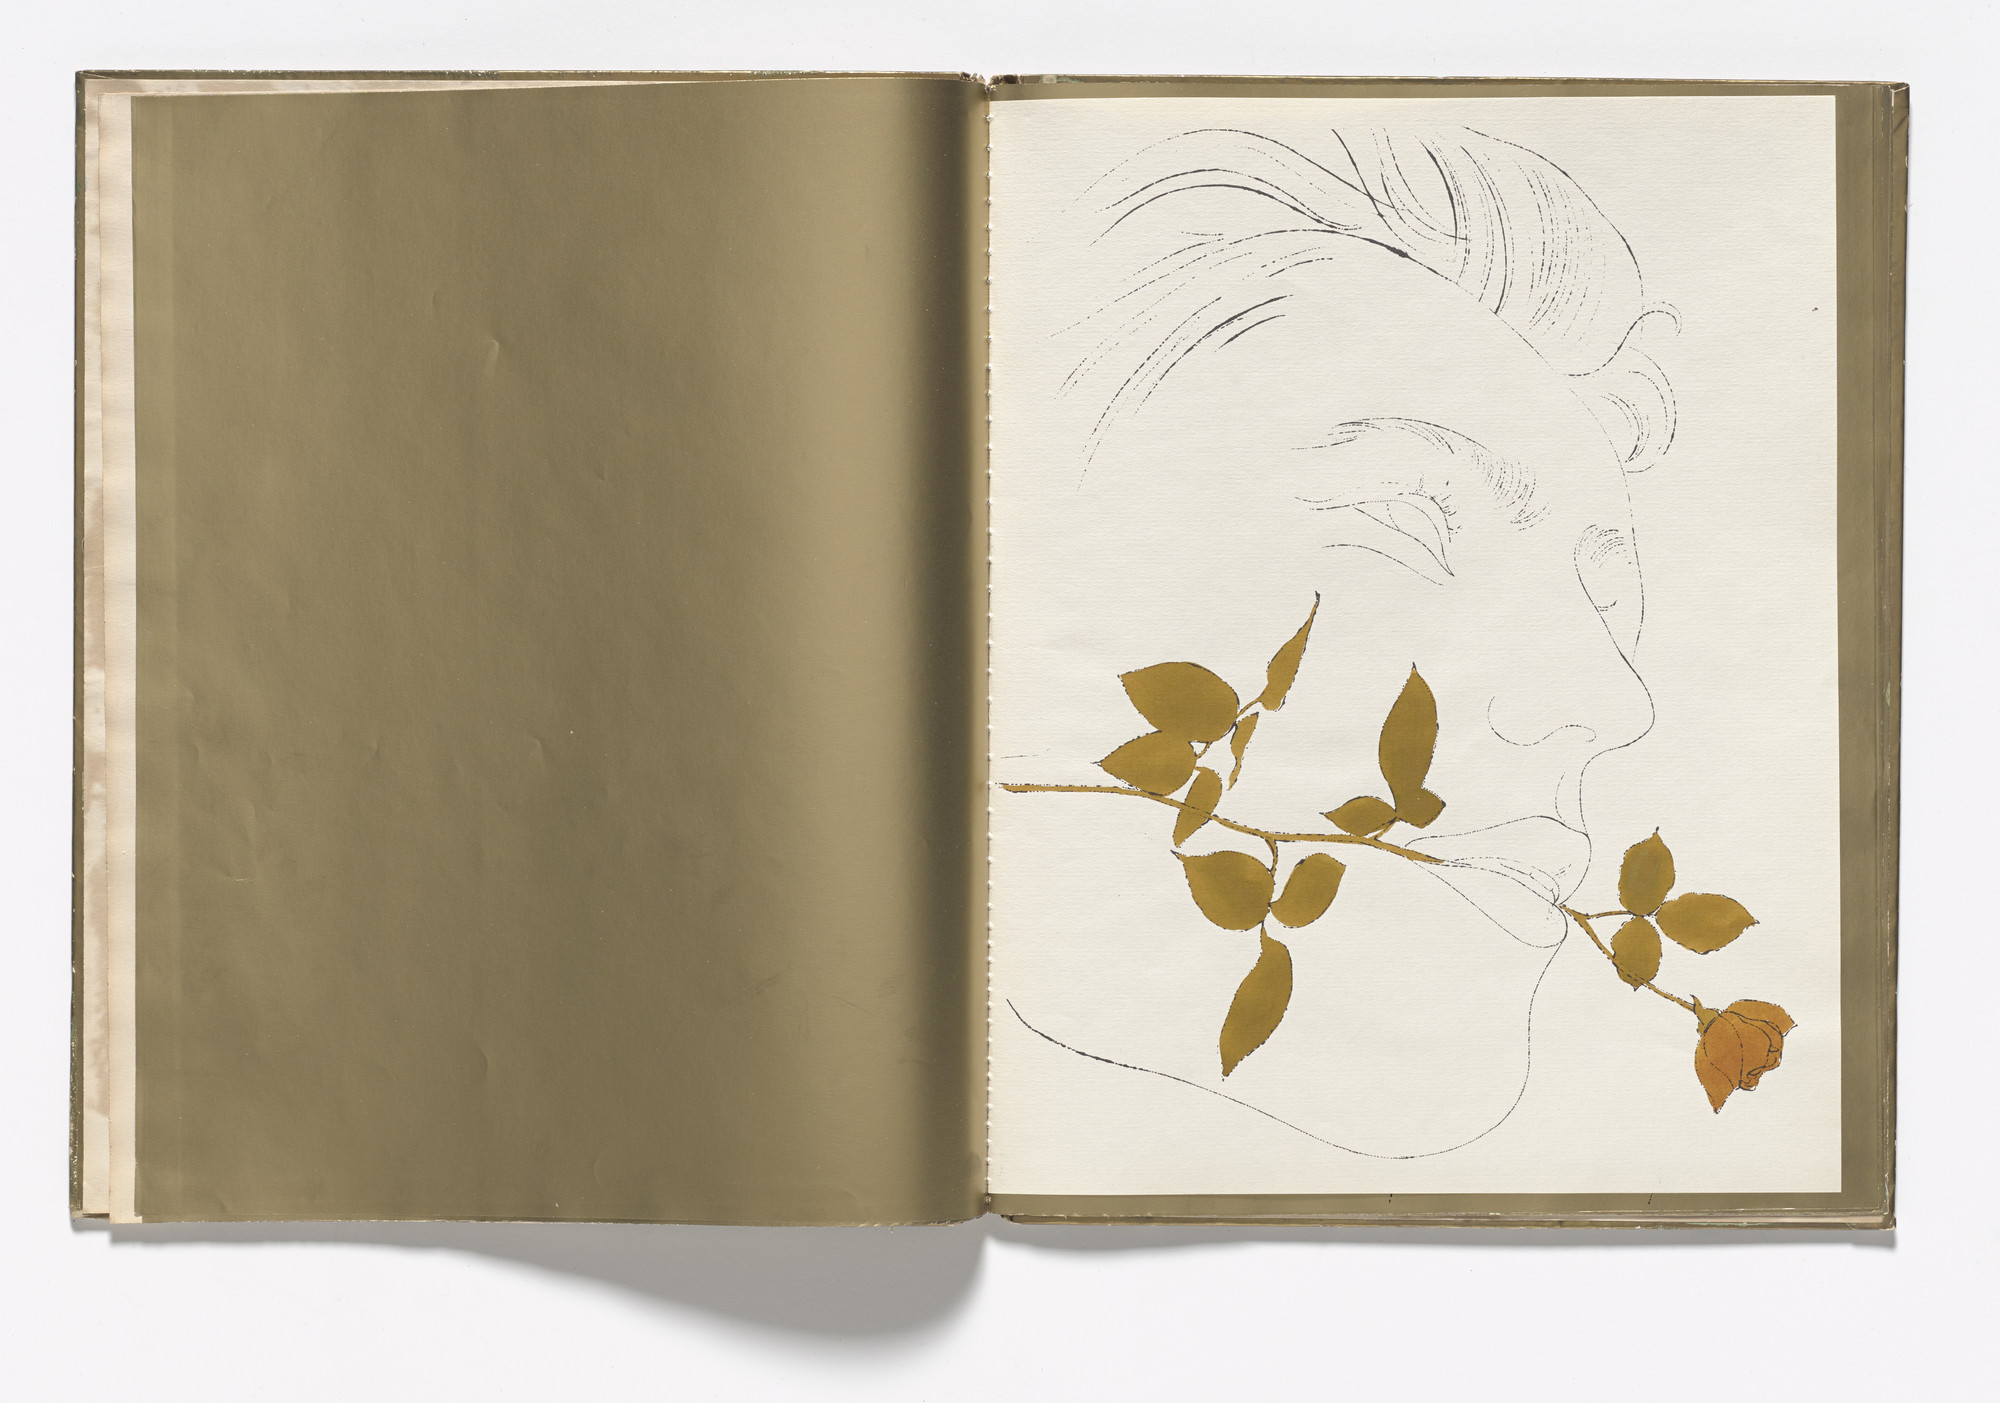 Andy Warhol. A Gold Book. 1957